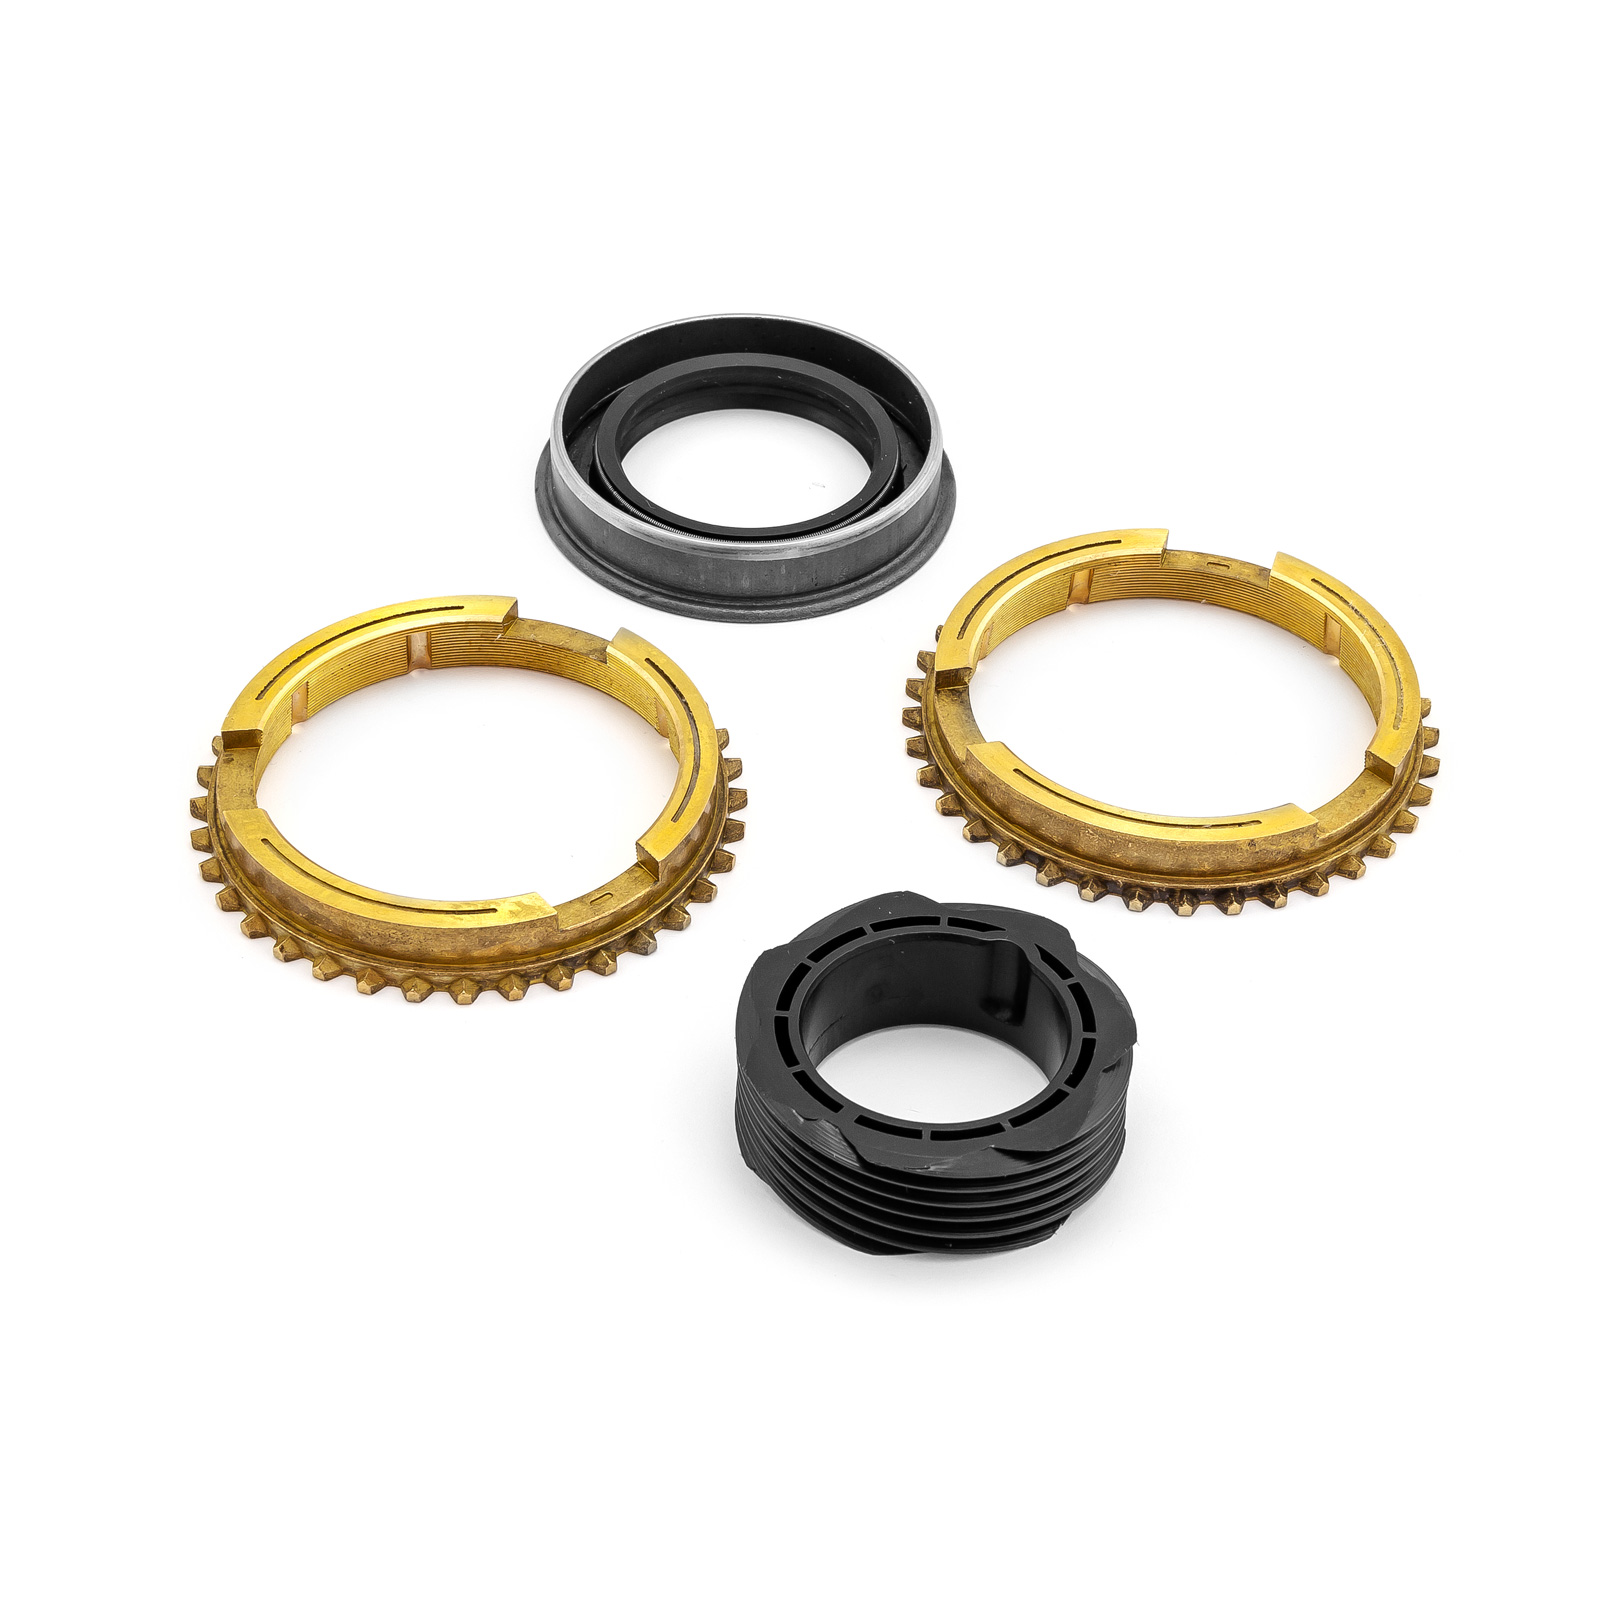 Ford Toploader Speedometer Drive Gear Blocking Rings Tailshaft Seal